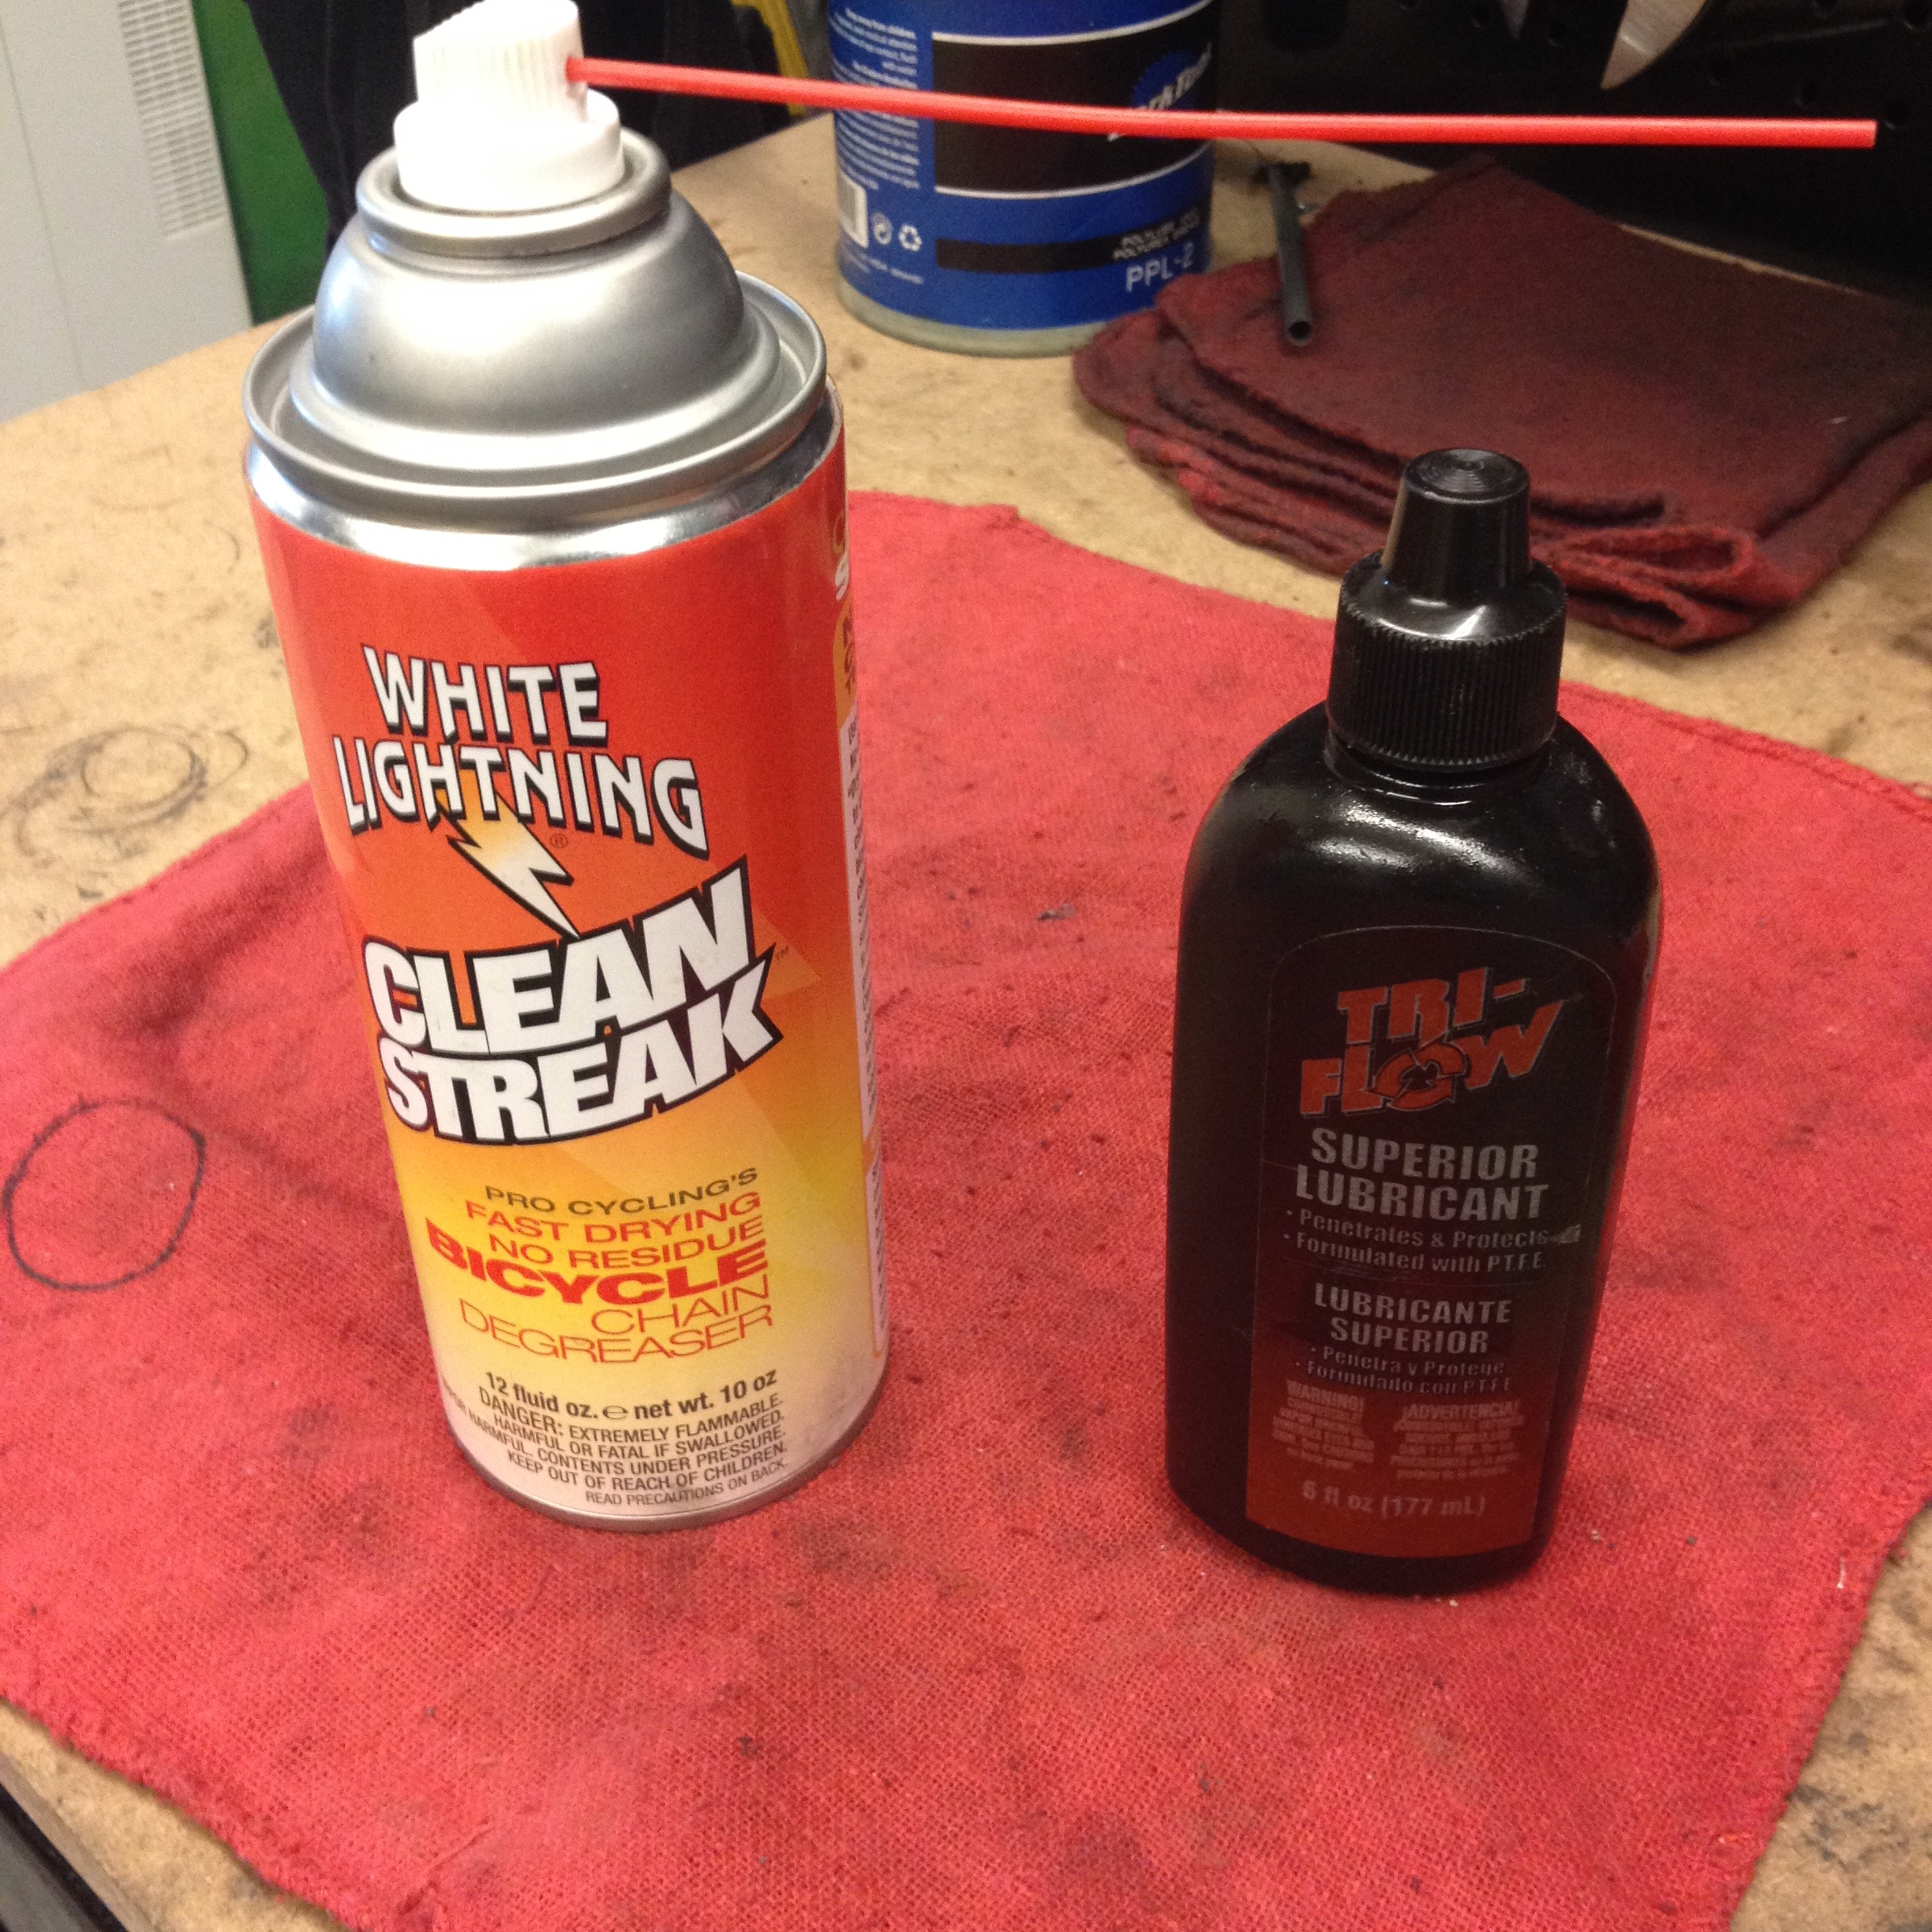 Kick Off Bike Month With Spring Maintenance Indianapolis Cultural Tool 15 In 1 Chain Cutter United Hijau A Quick Wipe Rag And Some Fresh Lubricant Will Help Keep The Rolling Smoothly Do This Outside Or Over An Old Towel As It Can Get Little